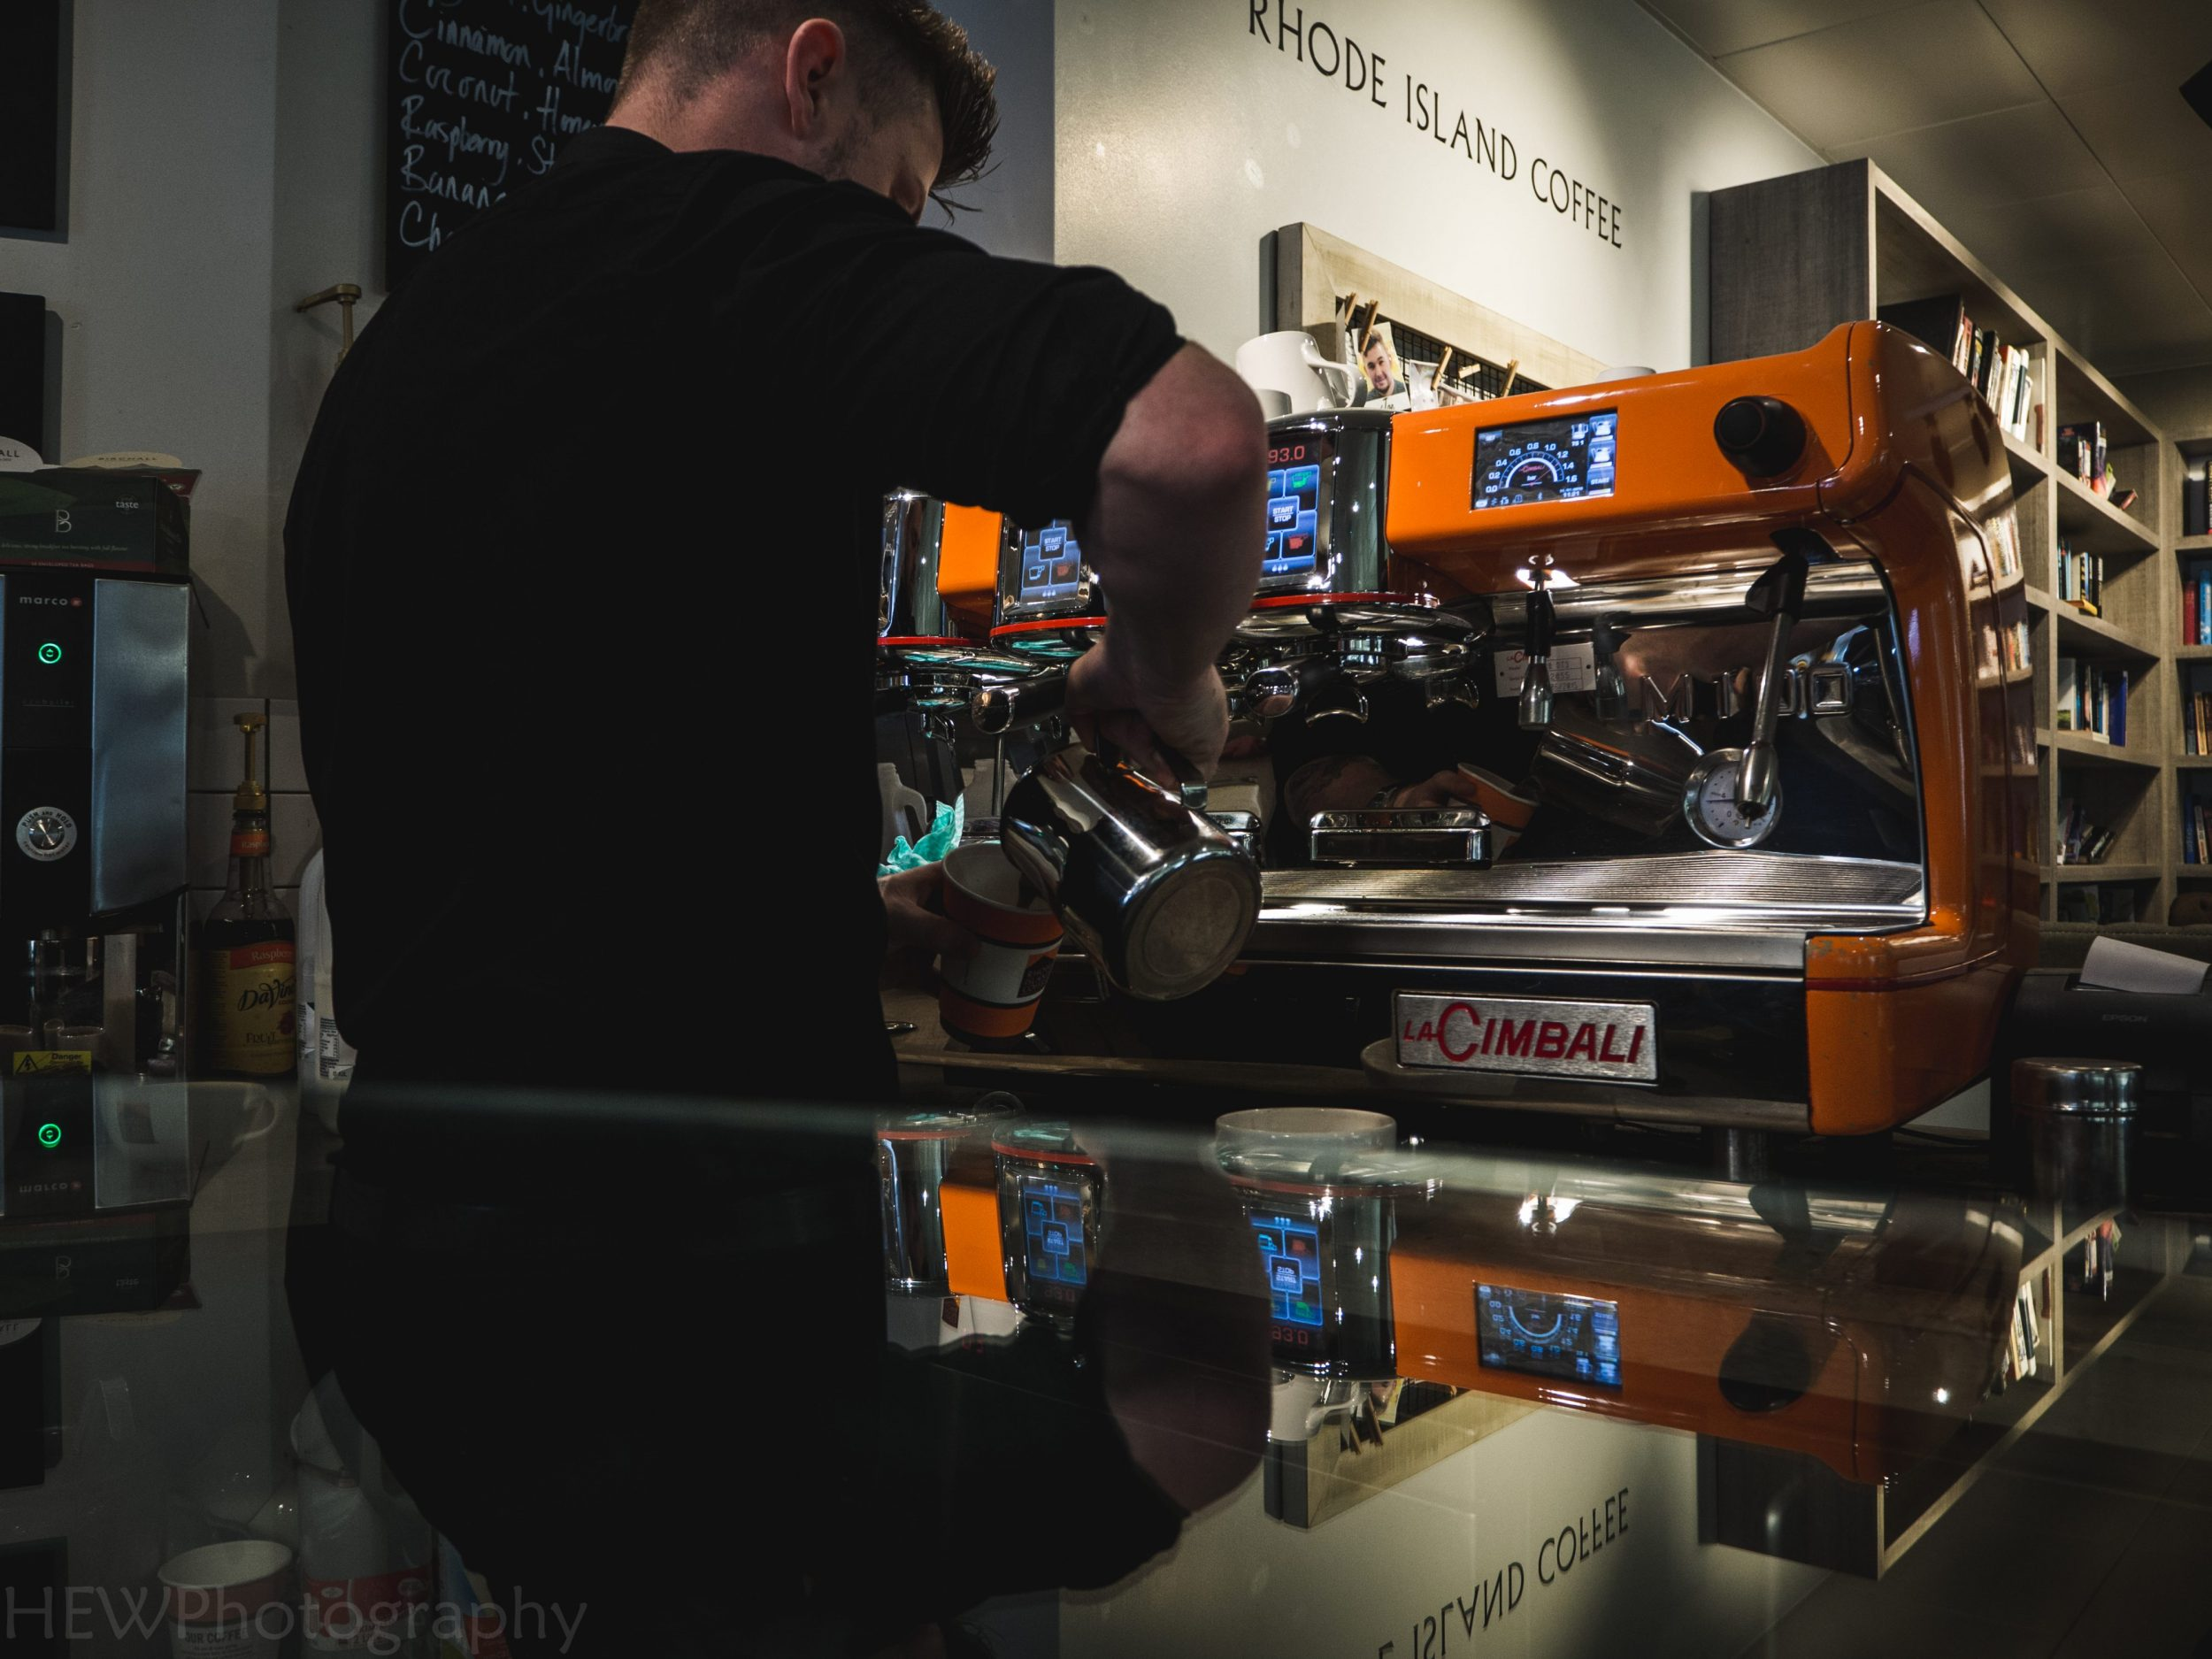 Rhode Island Coffee 2015 Best Independent Coffee Bar In The Uk